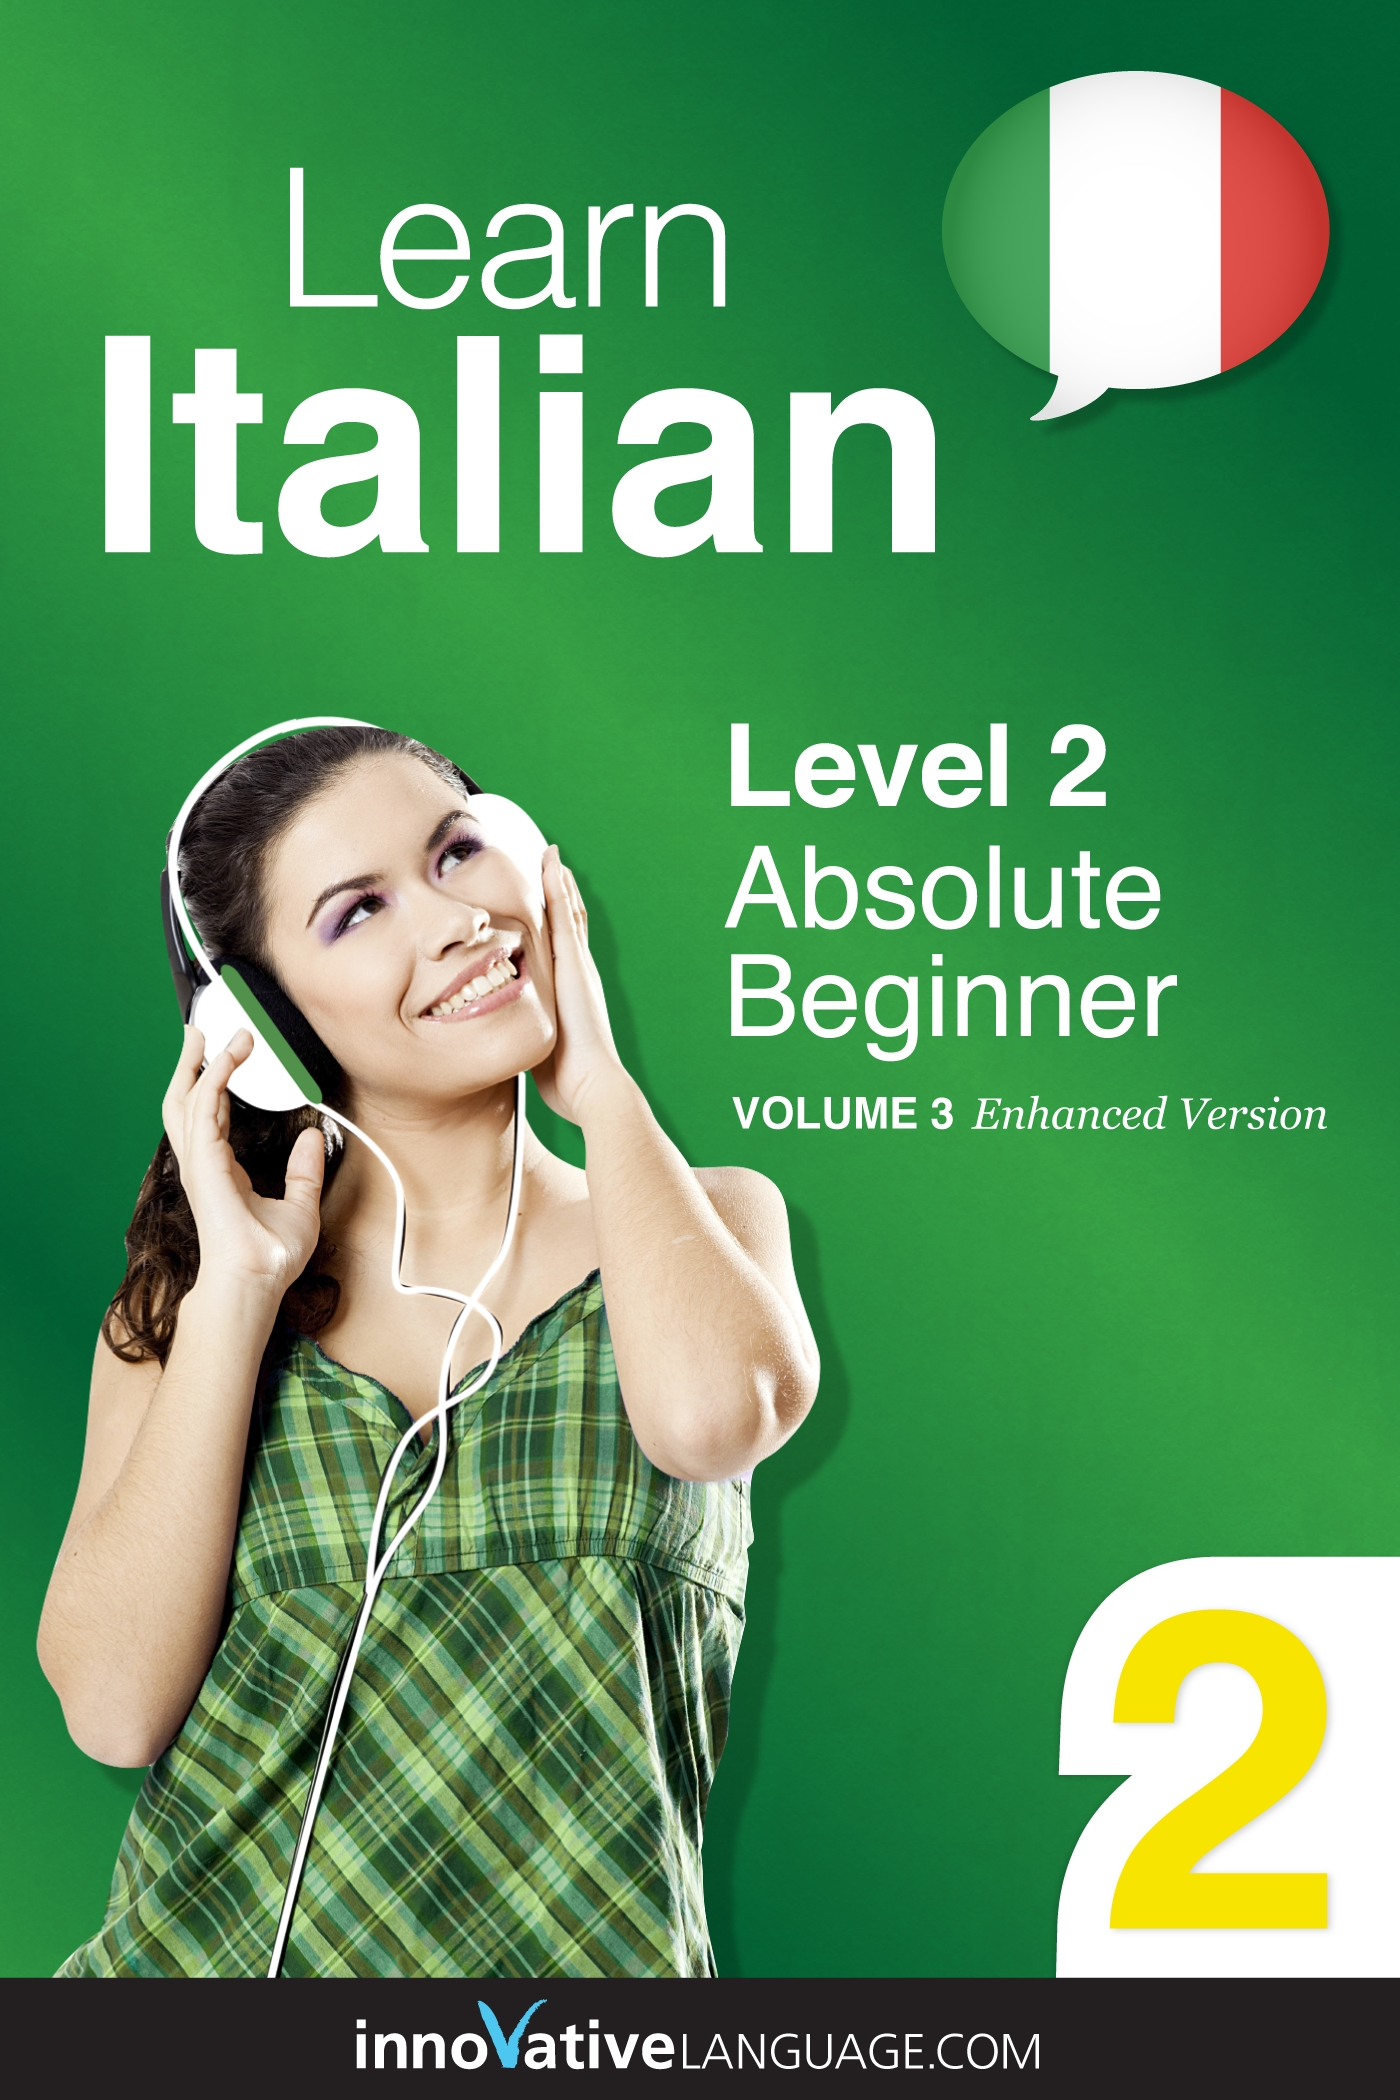 [eBook] Learn Italian - Level 2: Absolute Beginner, Volume 3